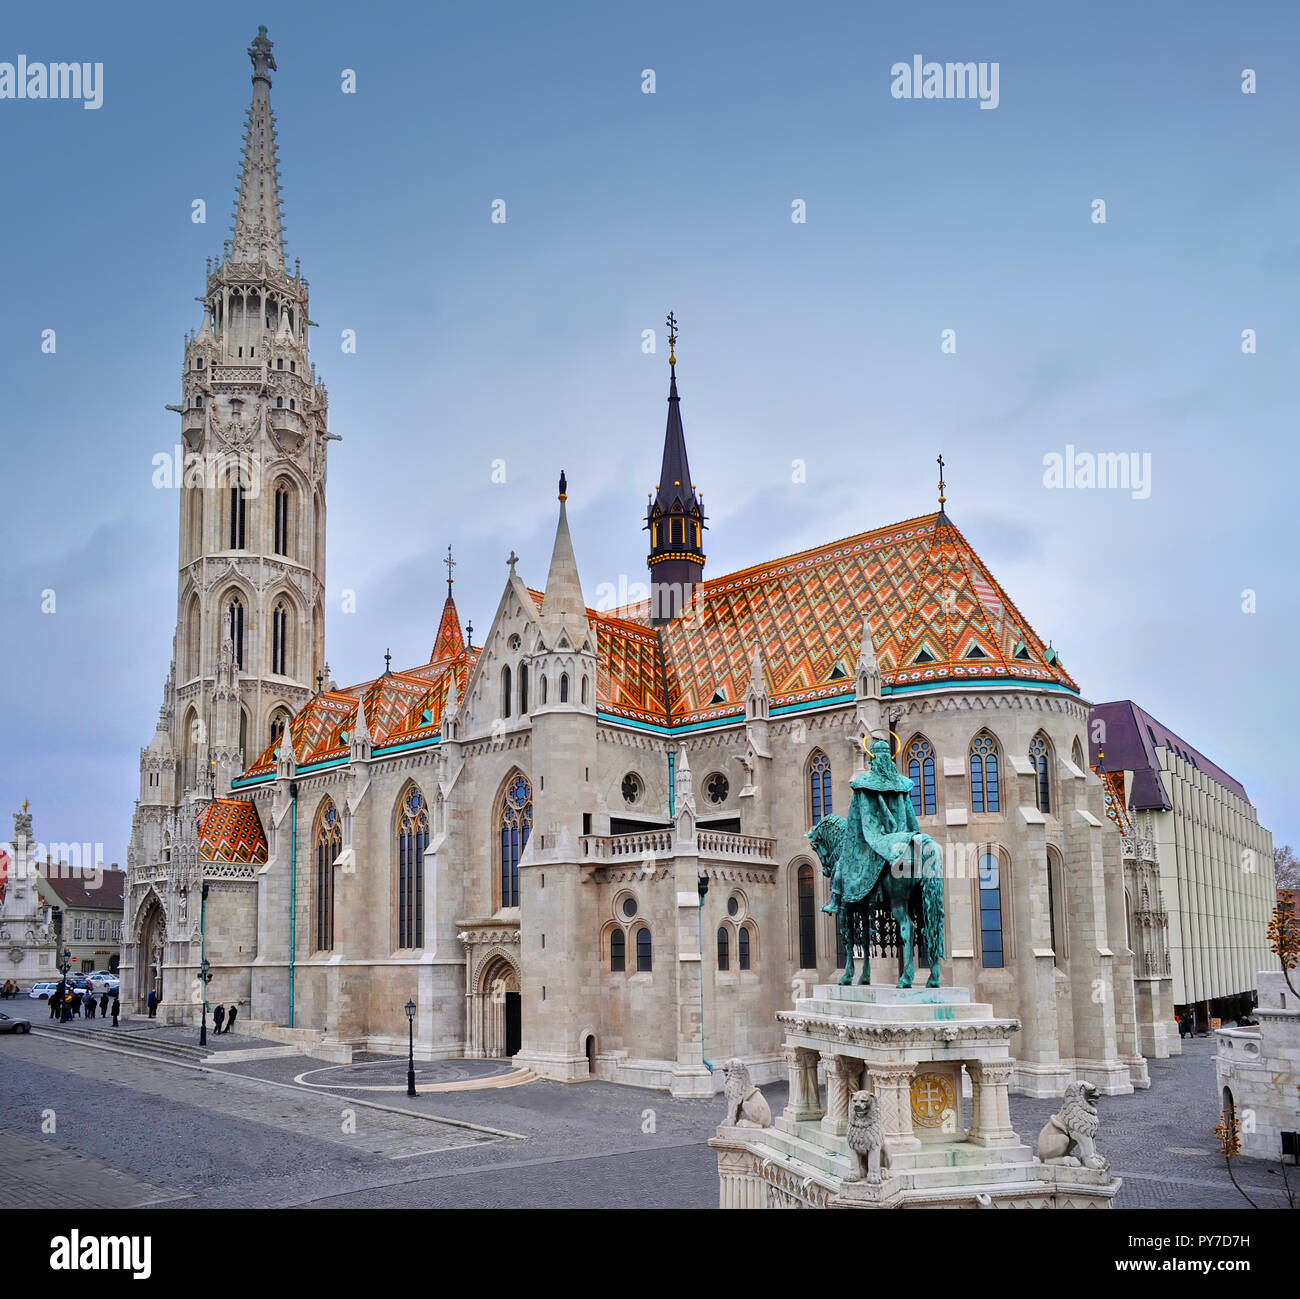 View on the Matthias Church and a sculpture of a man on a horse on a winter day. Shot from above. Budapest. Stock Photo